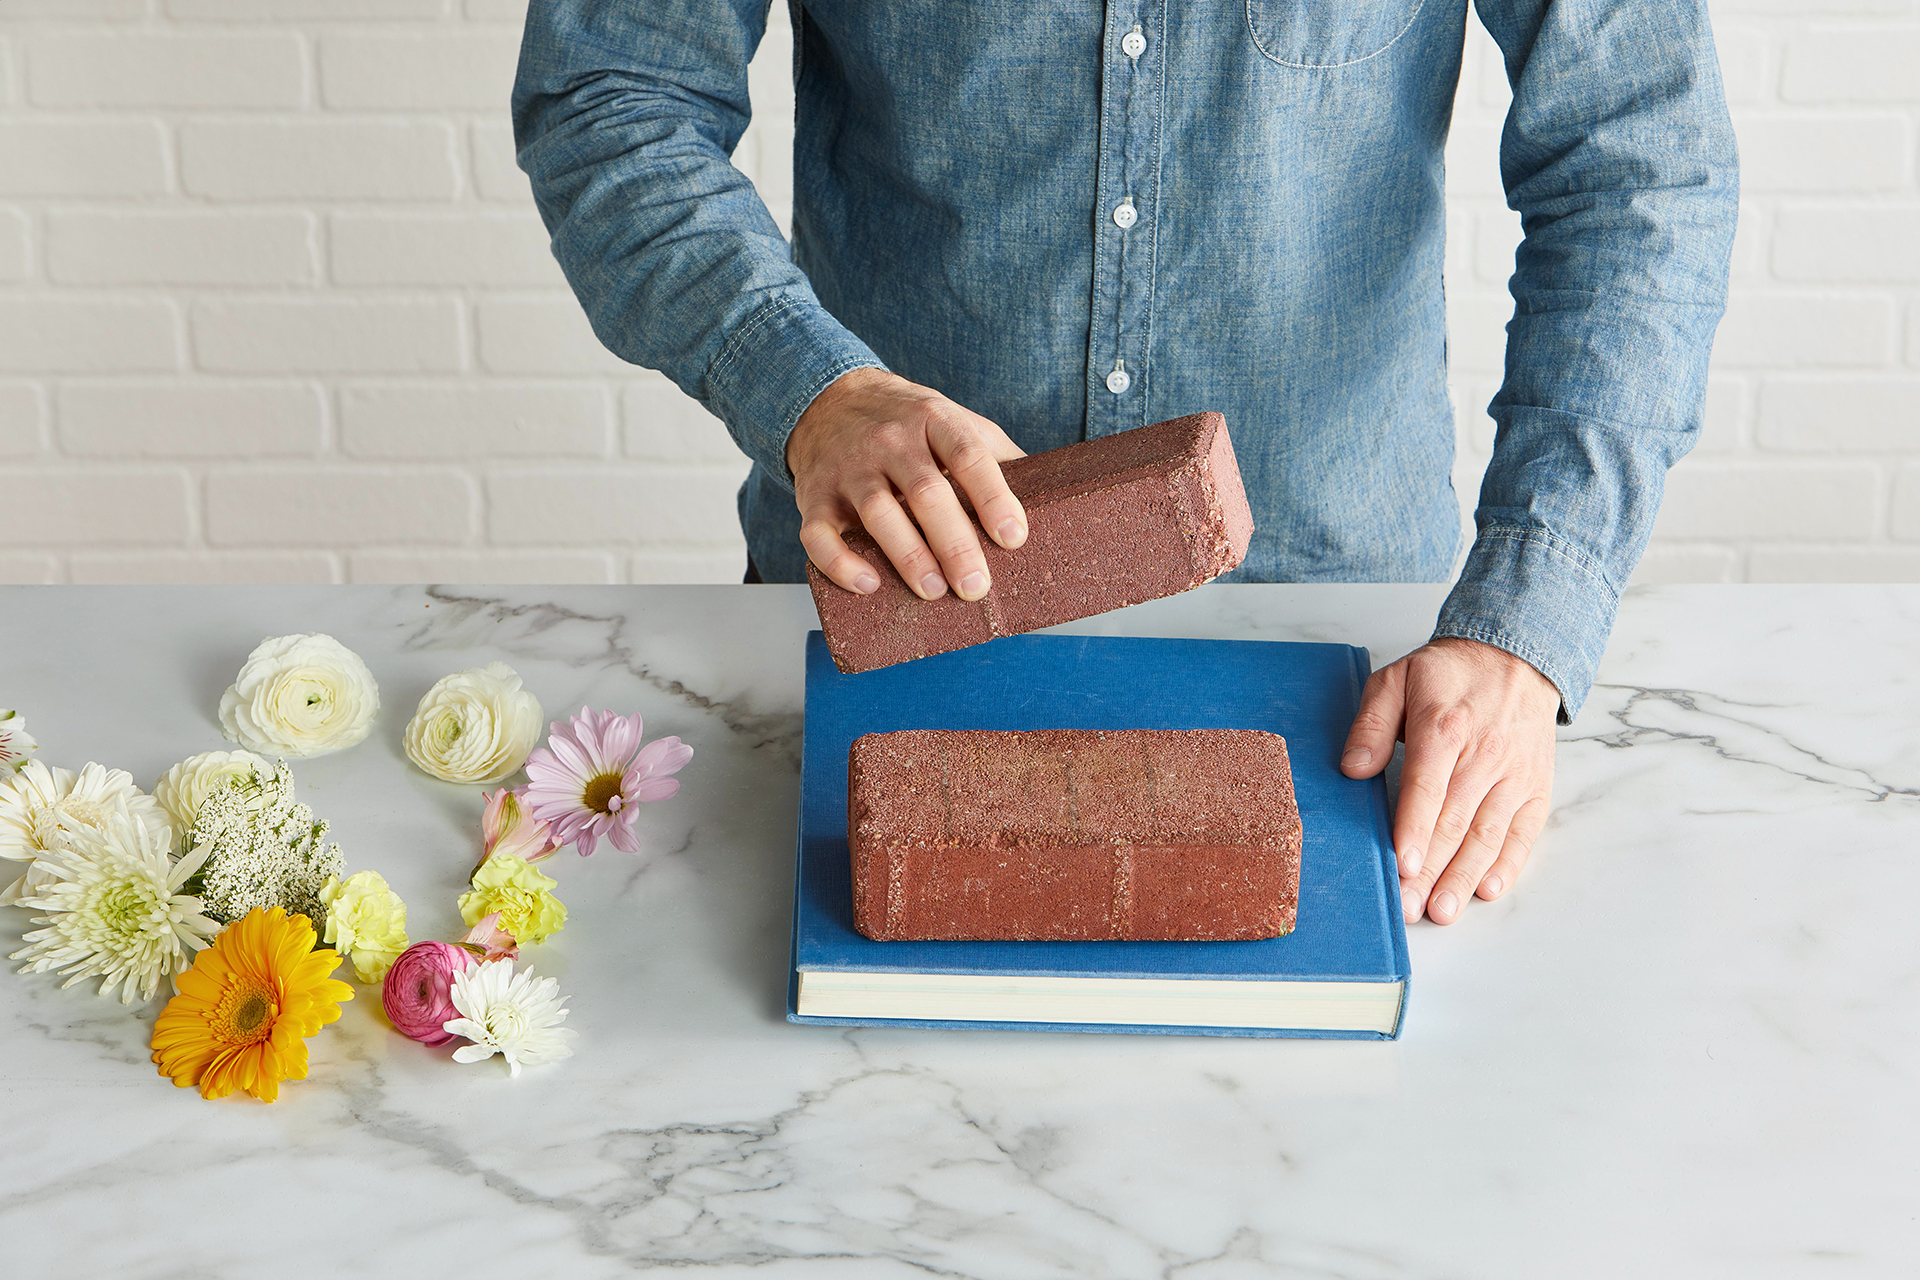 bricks and blue covered book used to press flowers